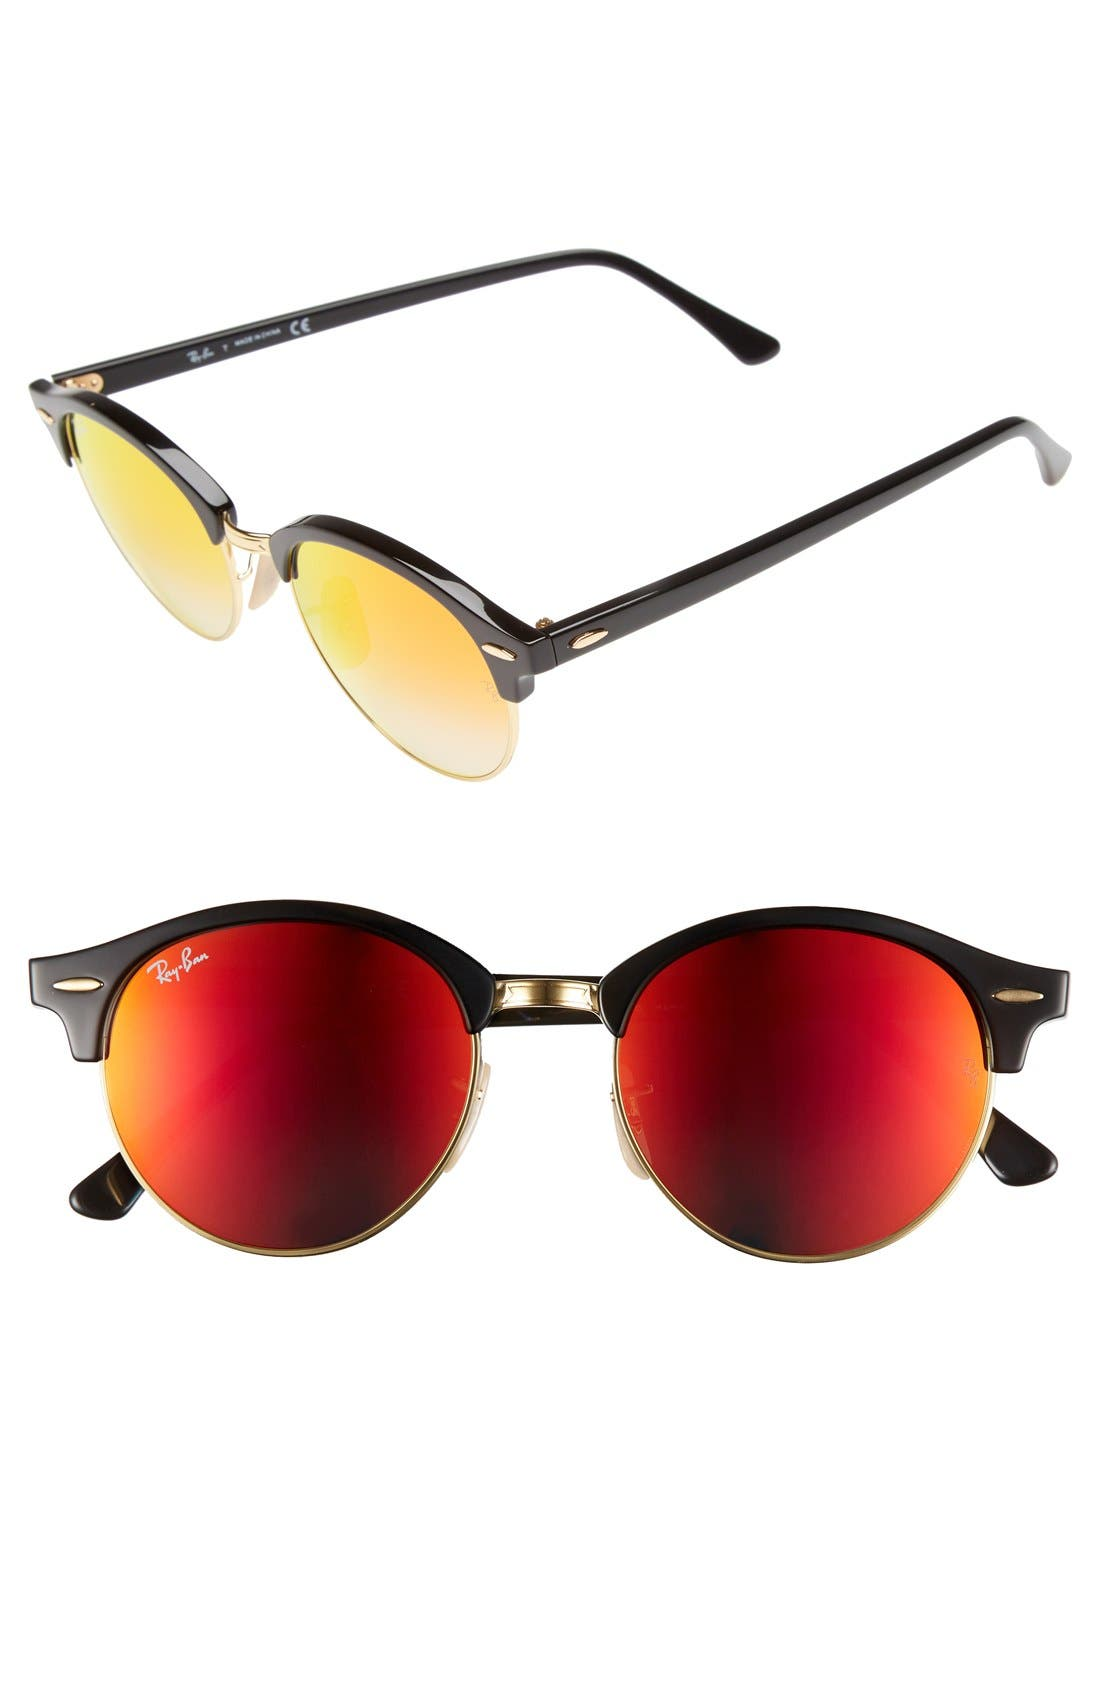 Alternate Image 1 Selected - Ray-Ban 'Clubround' 51mm Sunglasses (Nordstrom Exclusive)